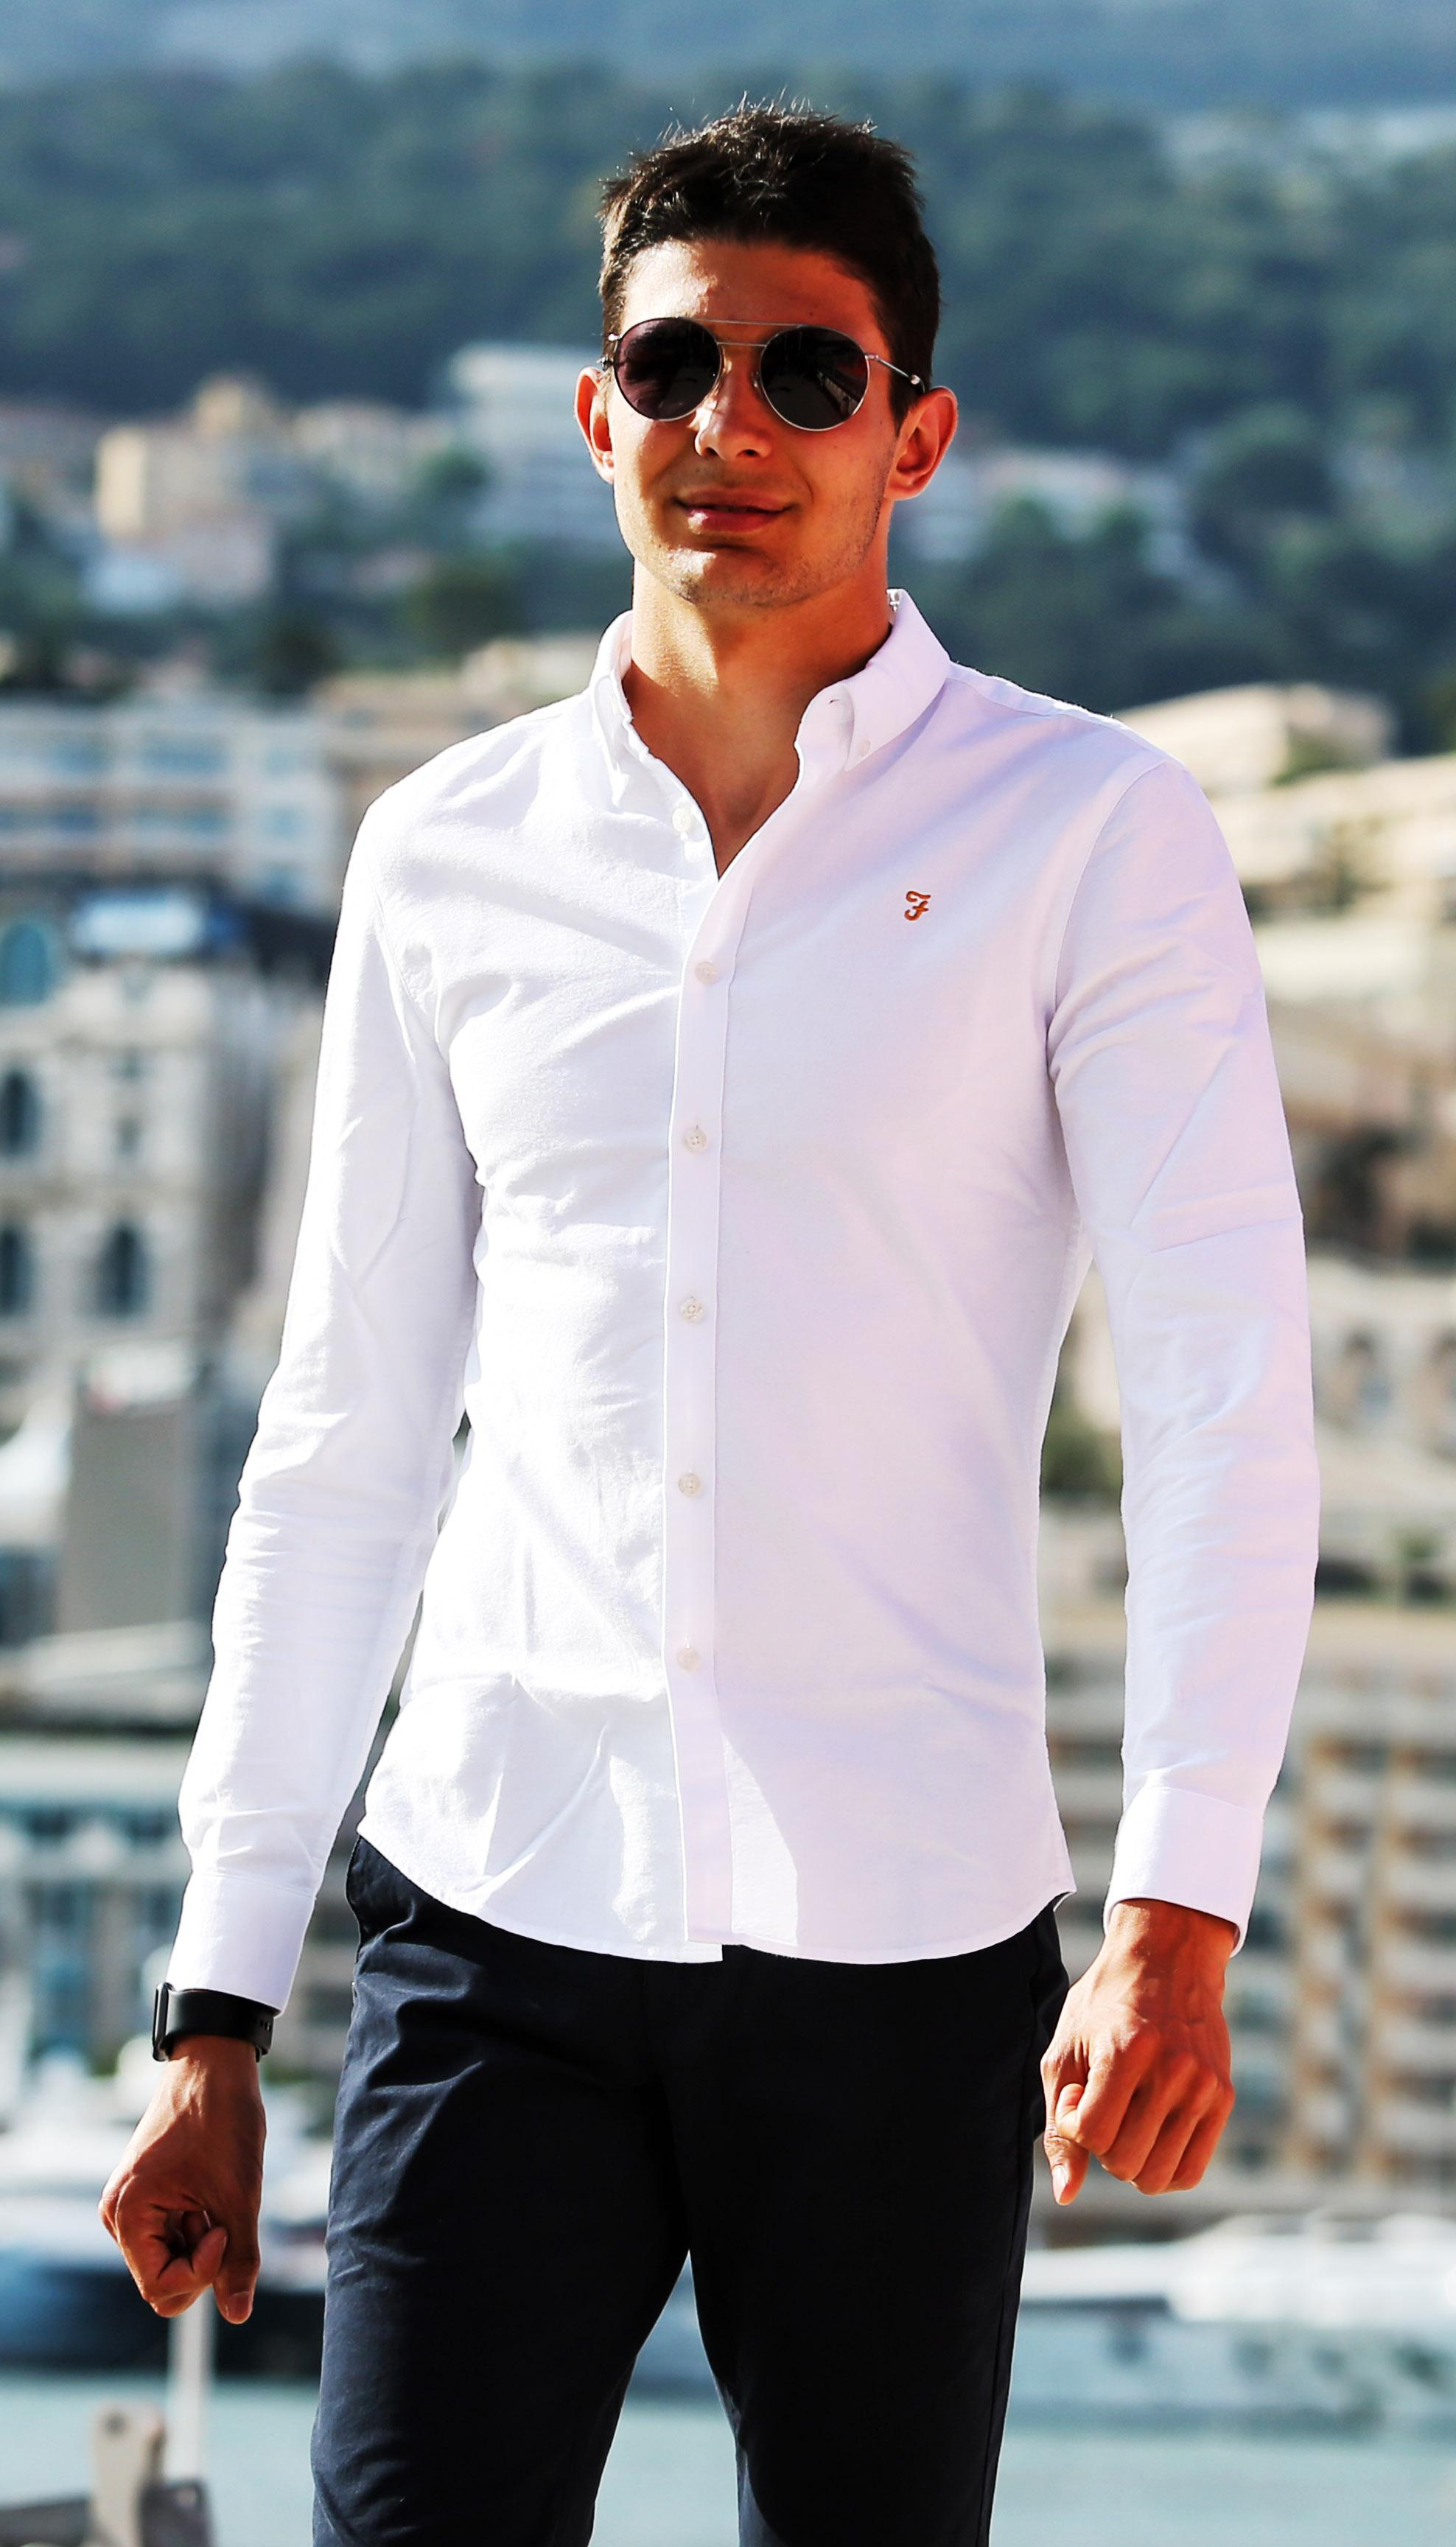 Esteban Ocon donning Farah Menswear while at the Monaco GP